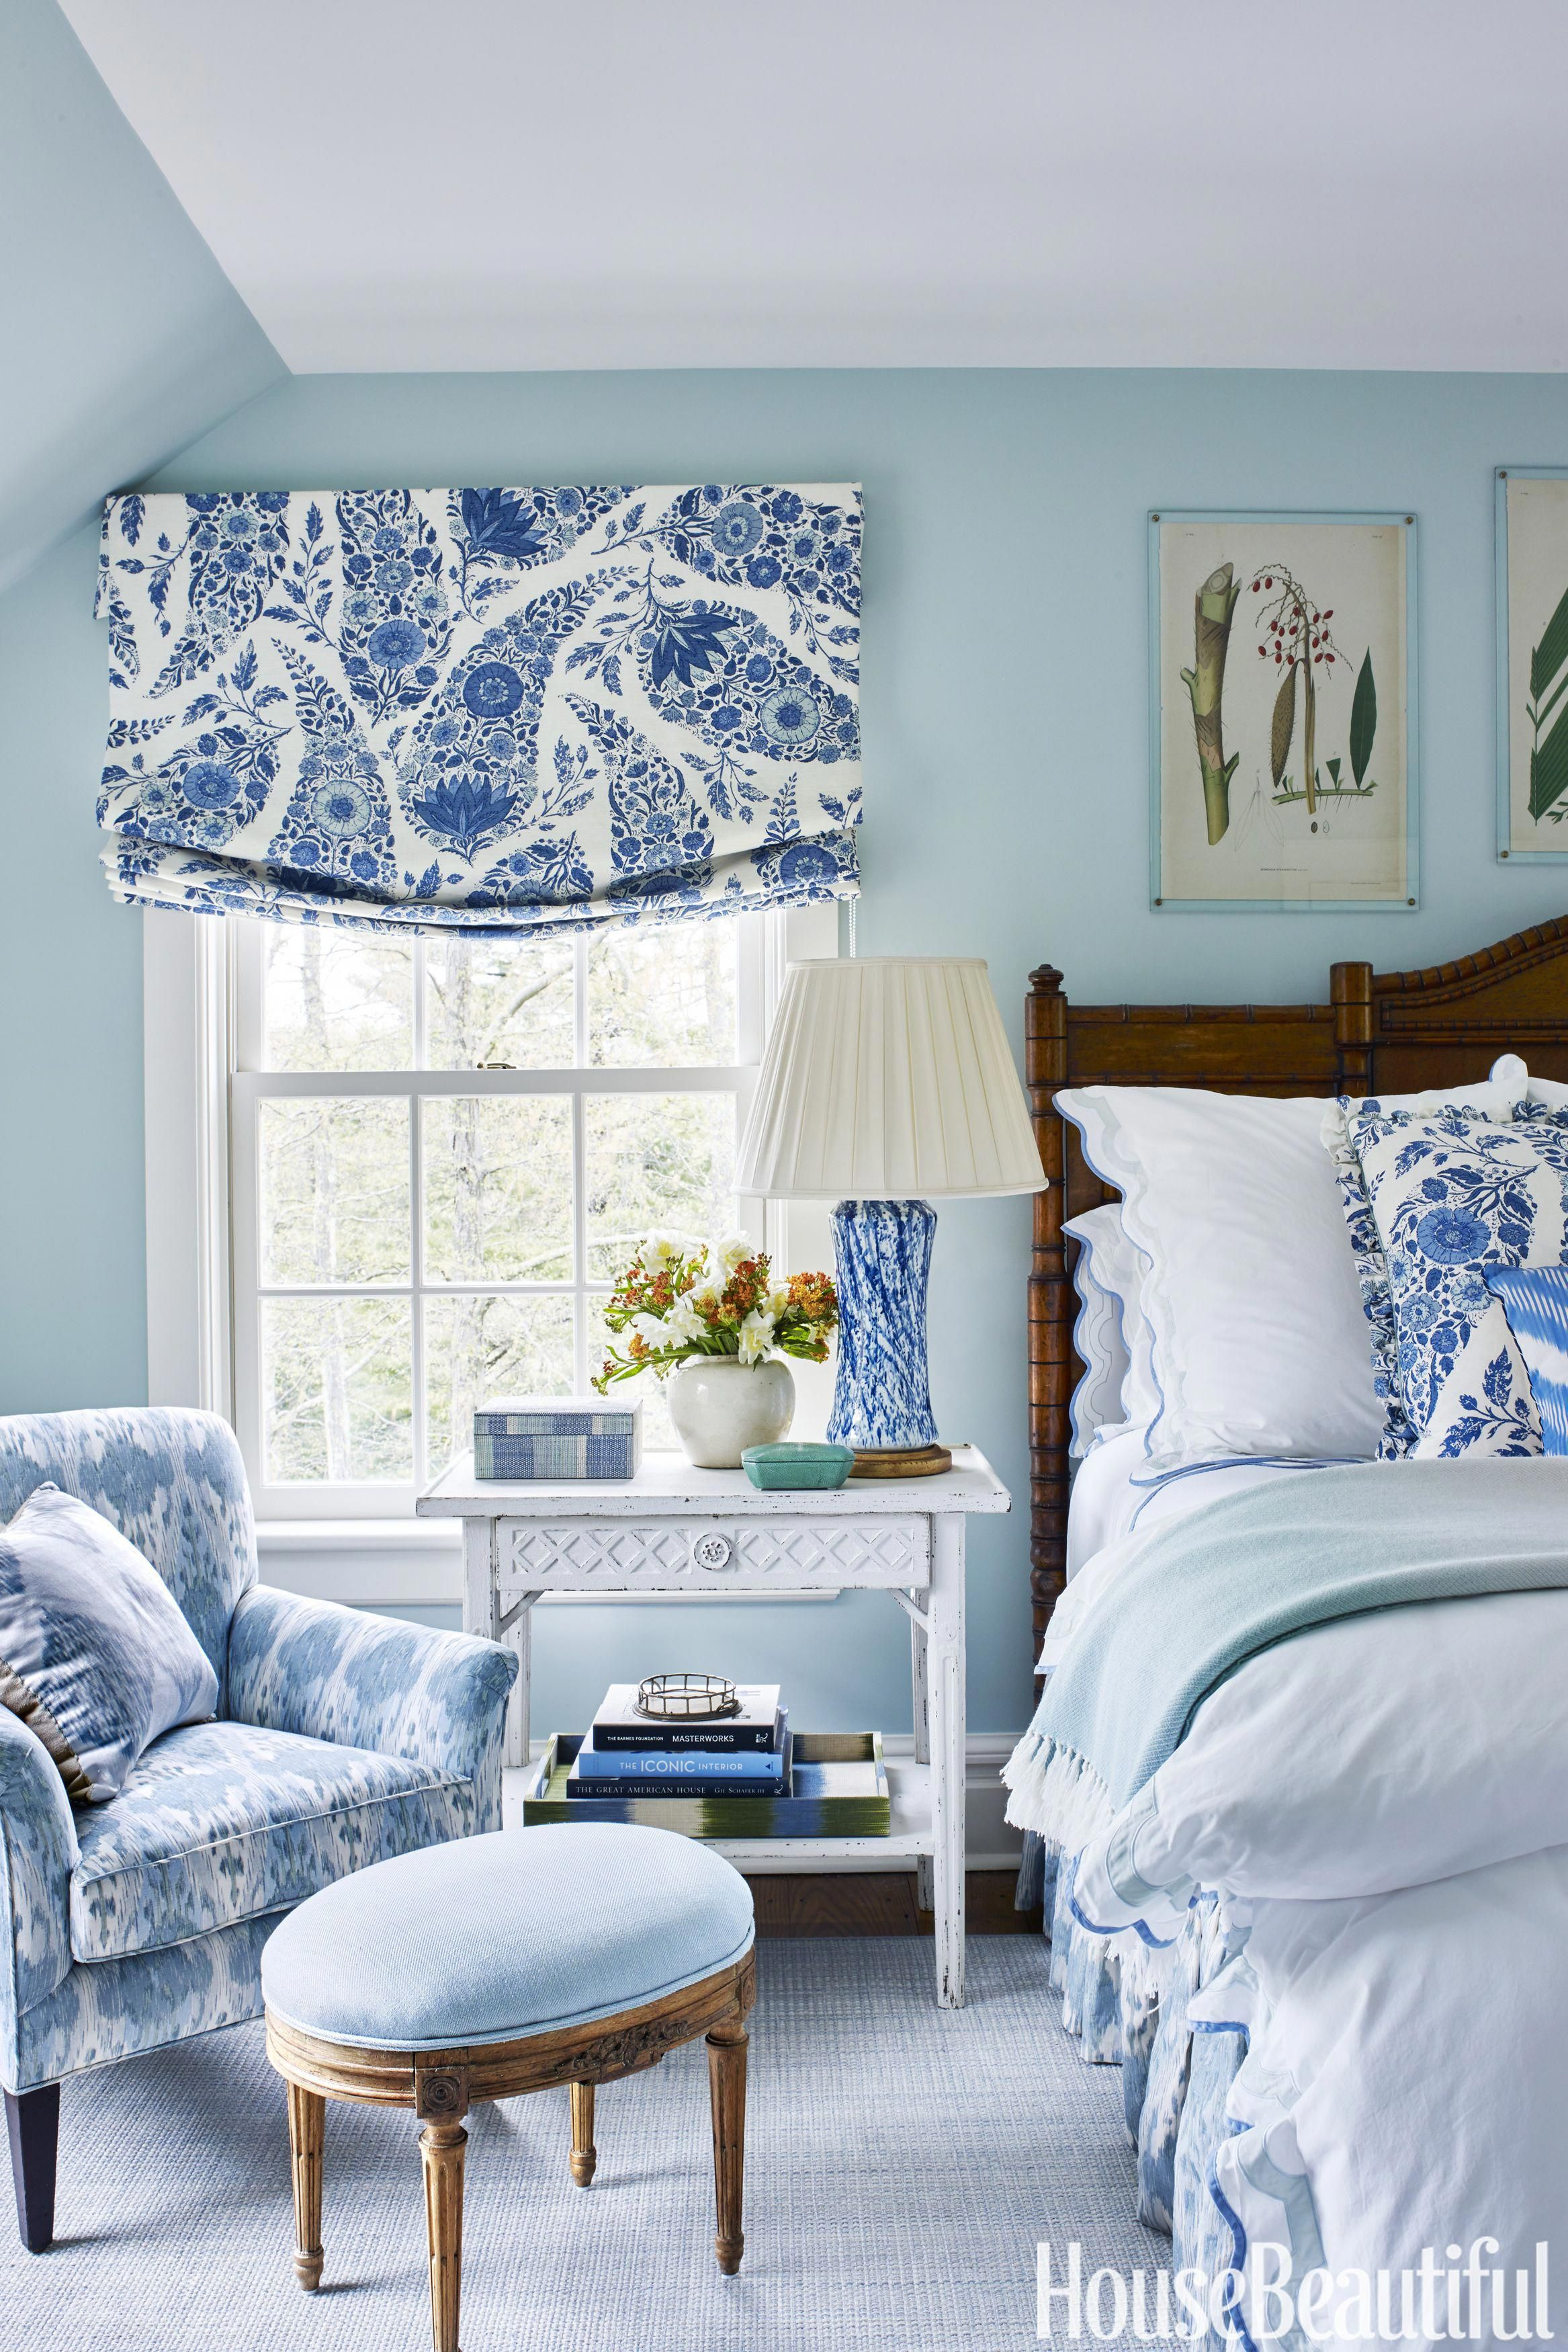 BEDROOM Classic blue and white makes an appearance in the guest